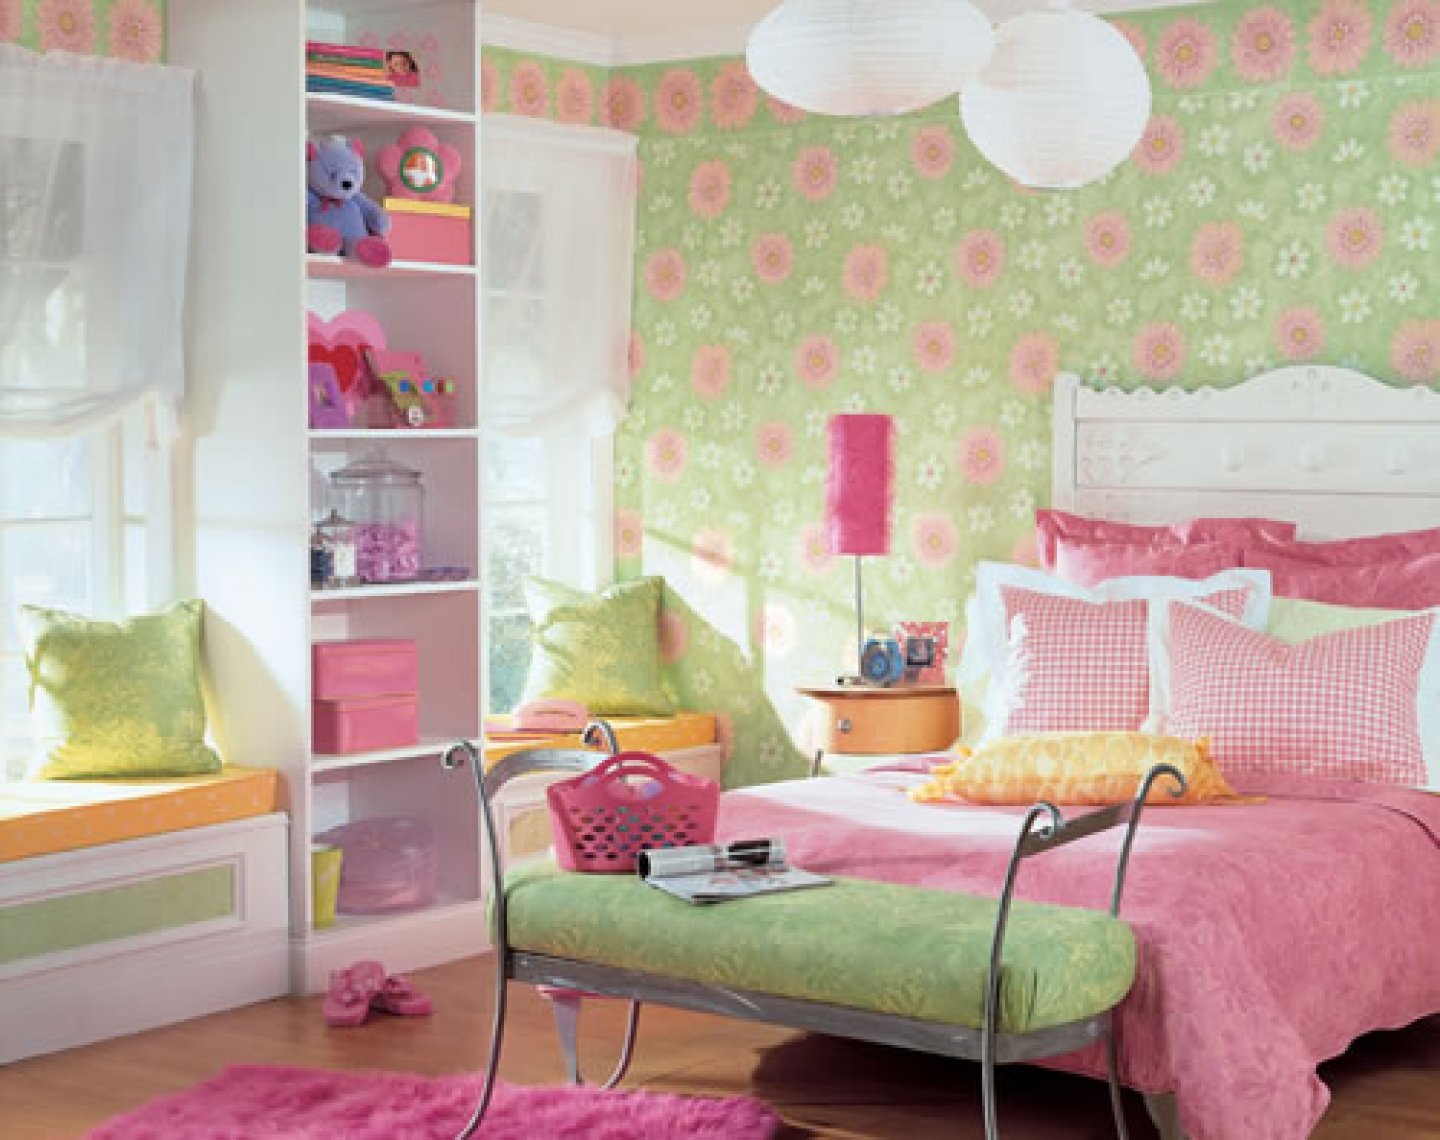 Green Polka Dots Wallpaper Bedroom Design